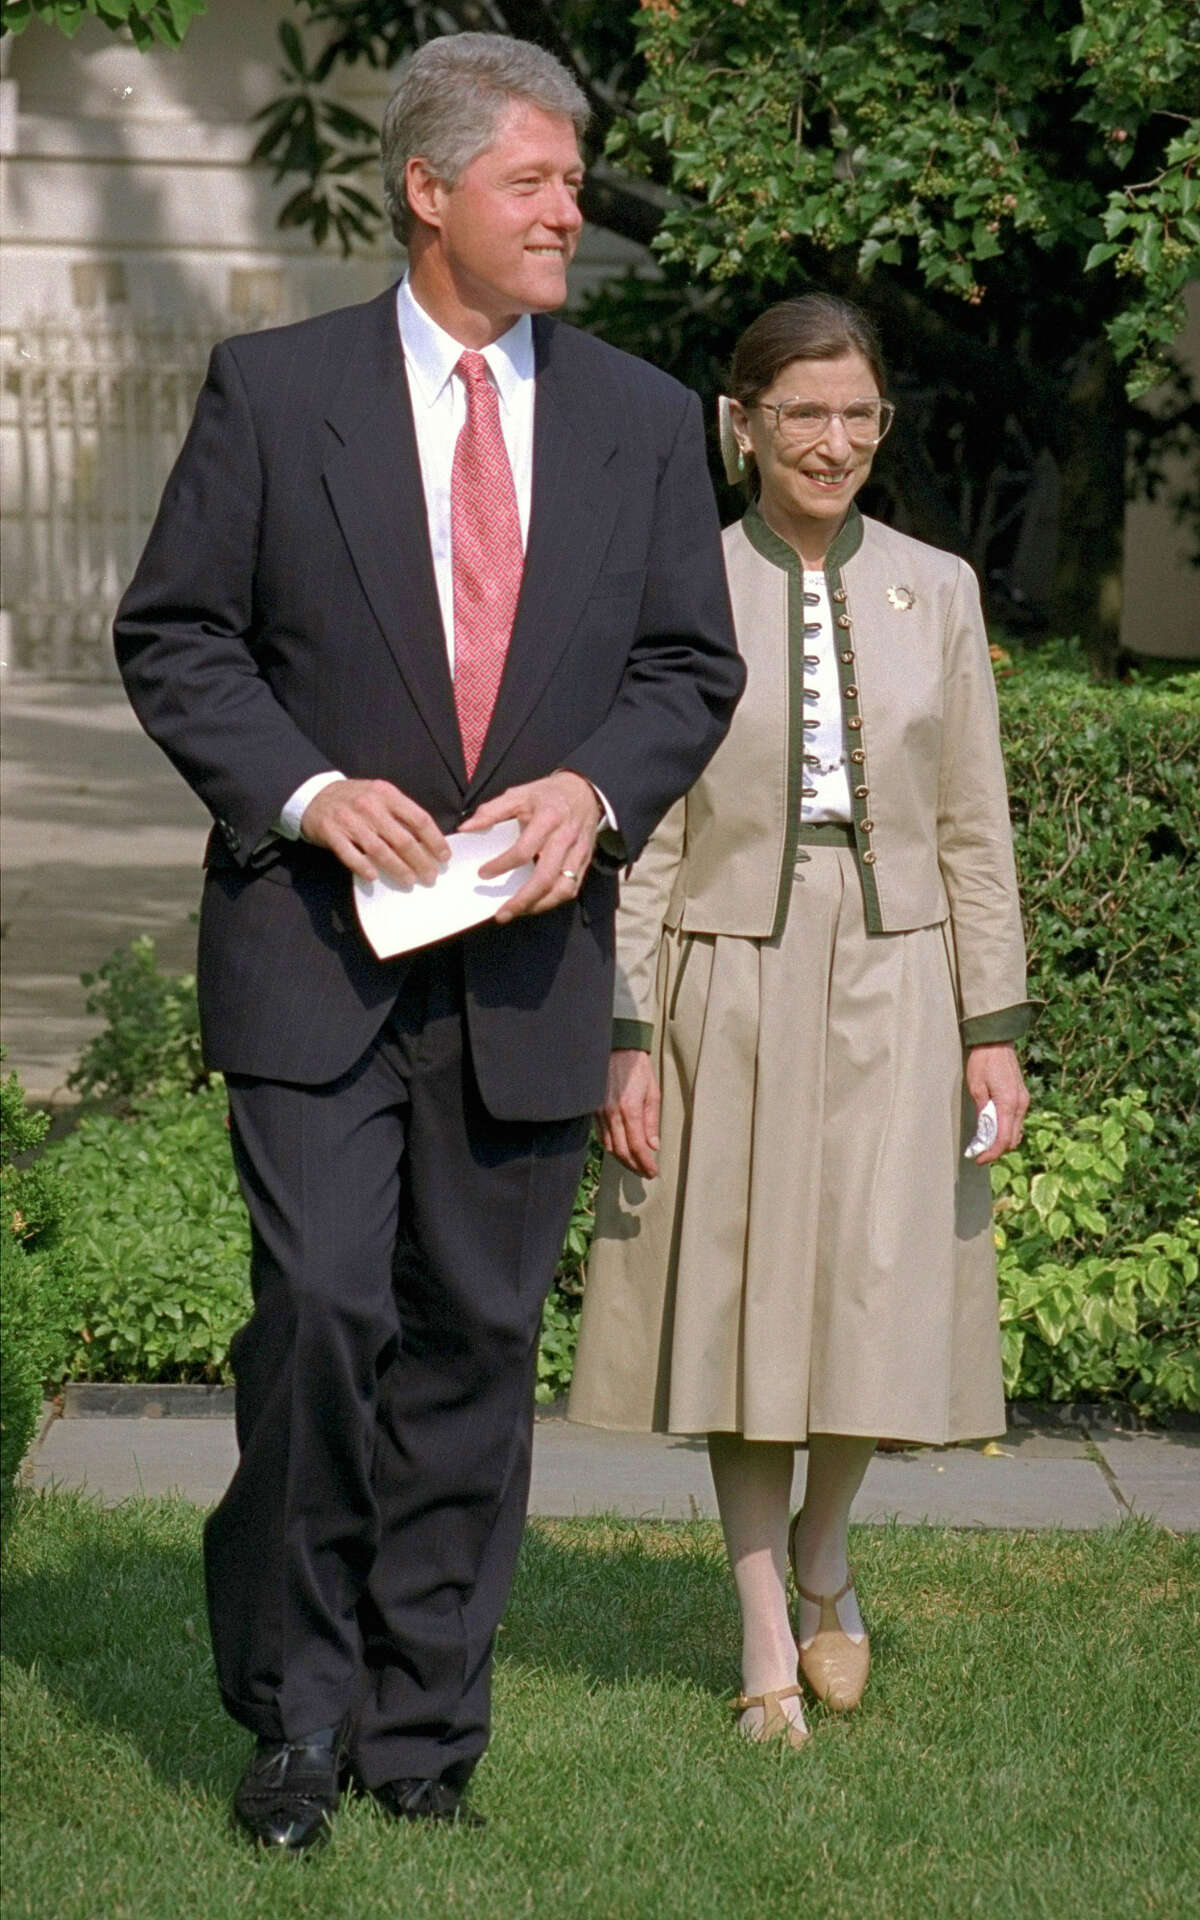 President Clinton and Judge Ruth Bader Ginsburg walk to the Rose Garden of the White House in this Aug. 3, 1993 file photo.